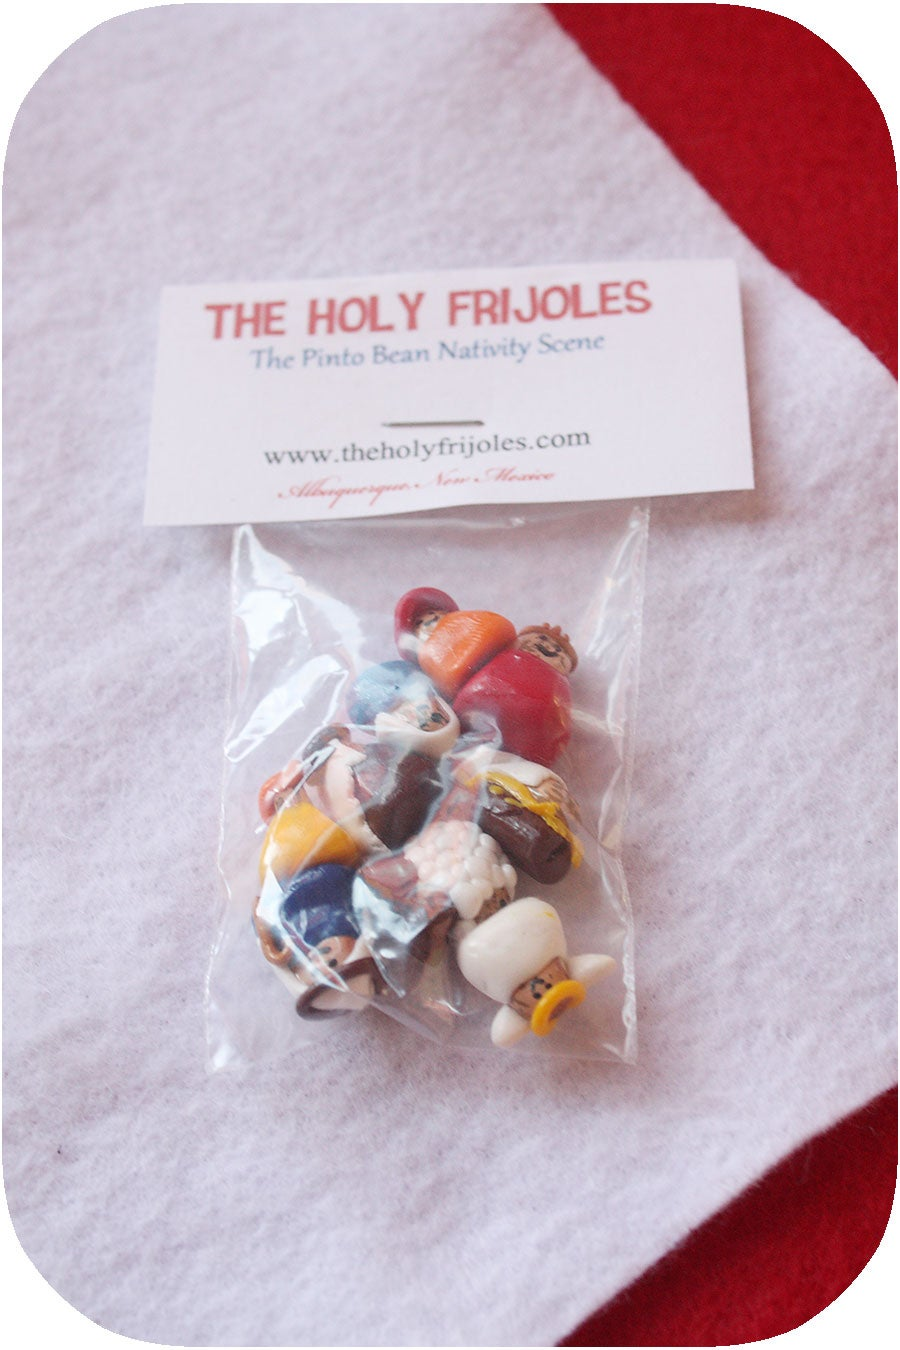 Image of WHOLESALE 20 sets of The Holy Frijoles™ The Pinto Bean Nativity Scene™